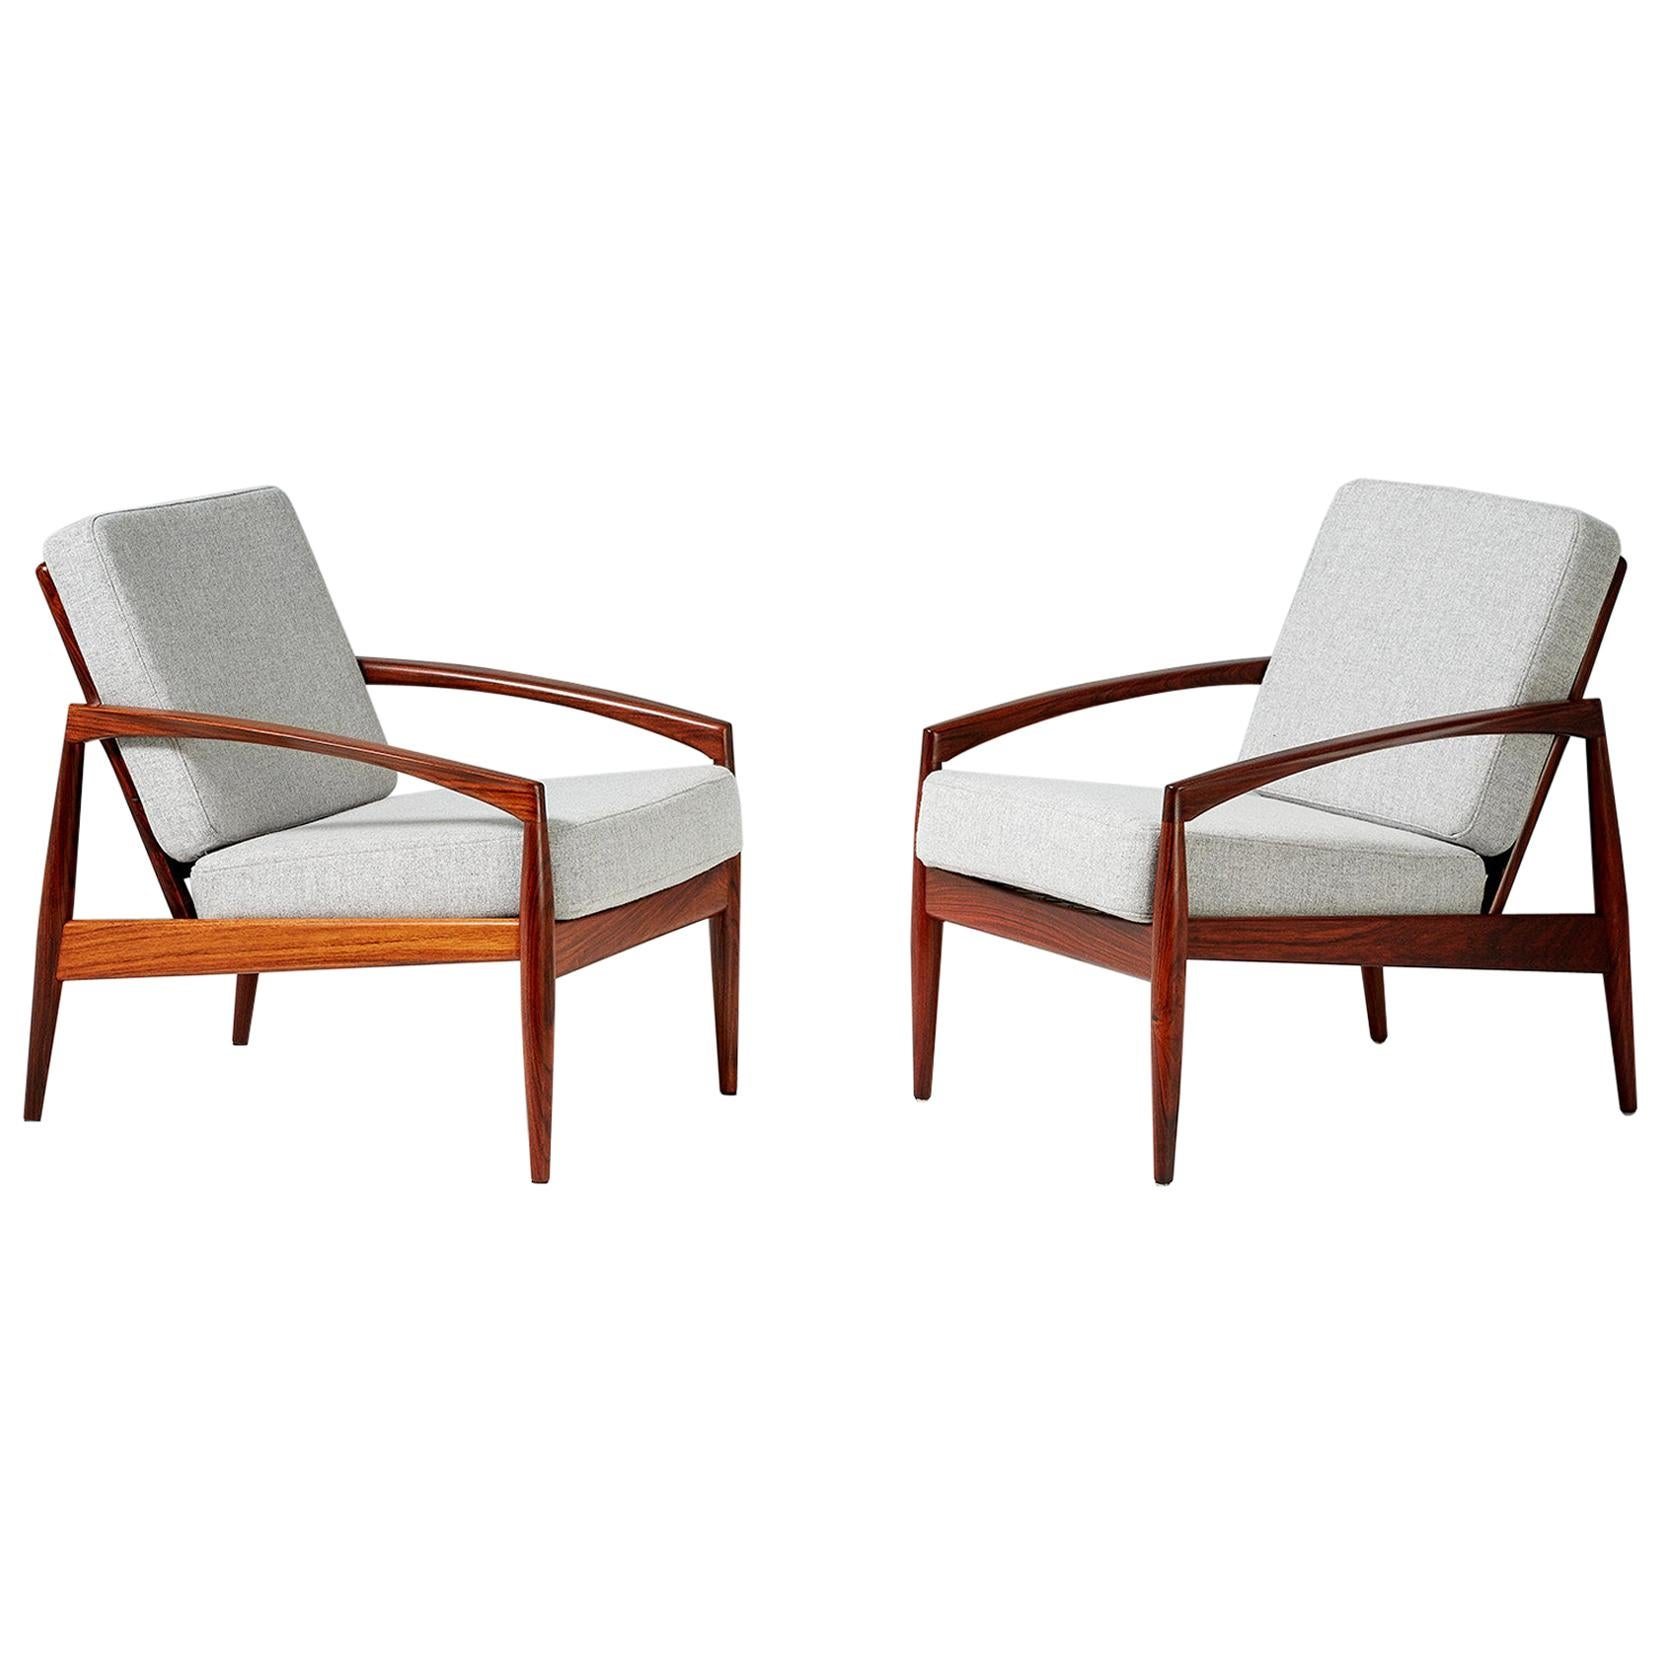 Kai Kristiansen Pair of Rosewood Paper Knife Lounge Chairs, 1950s